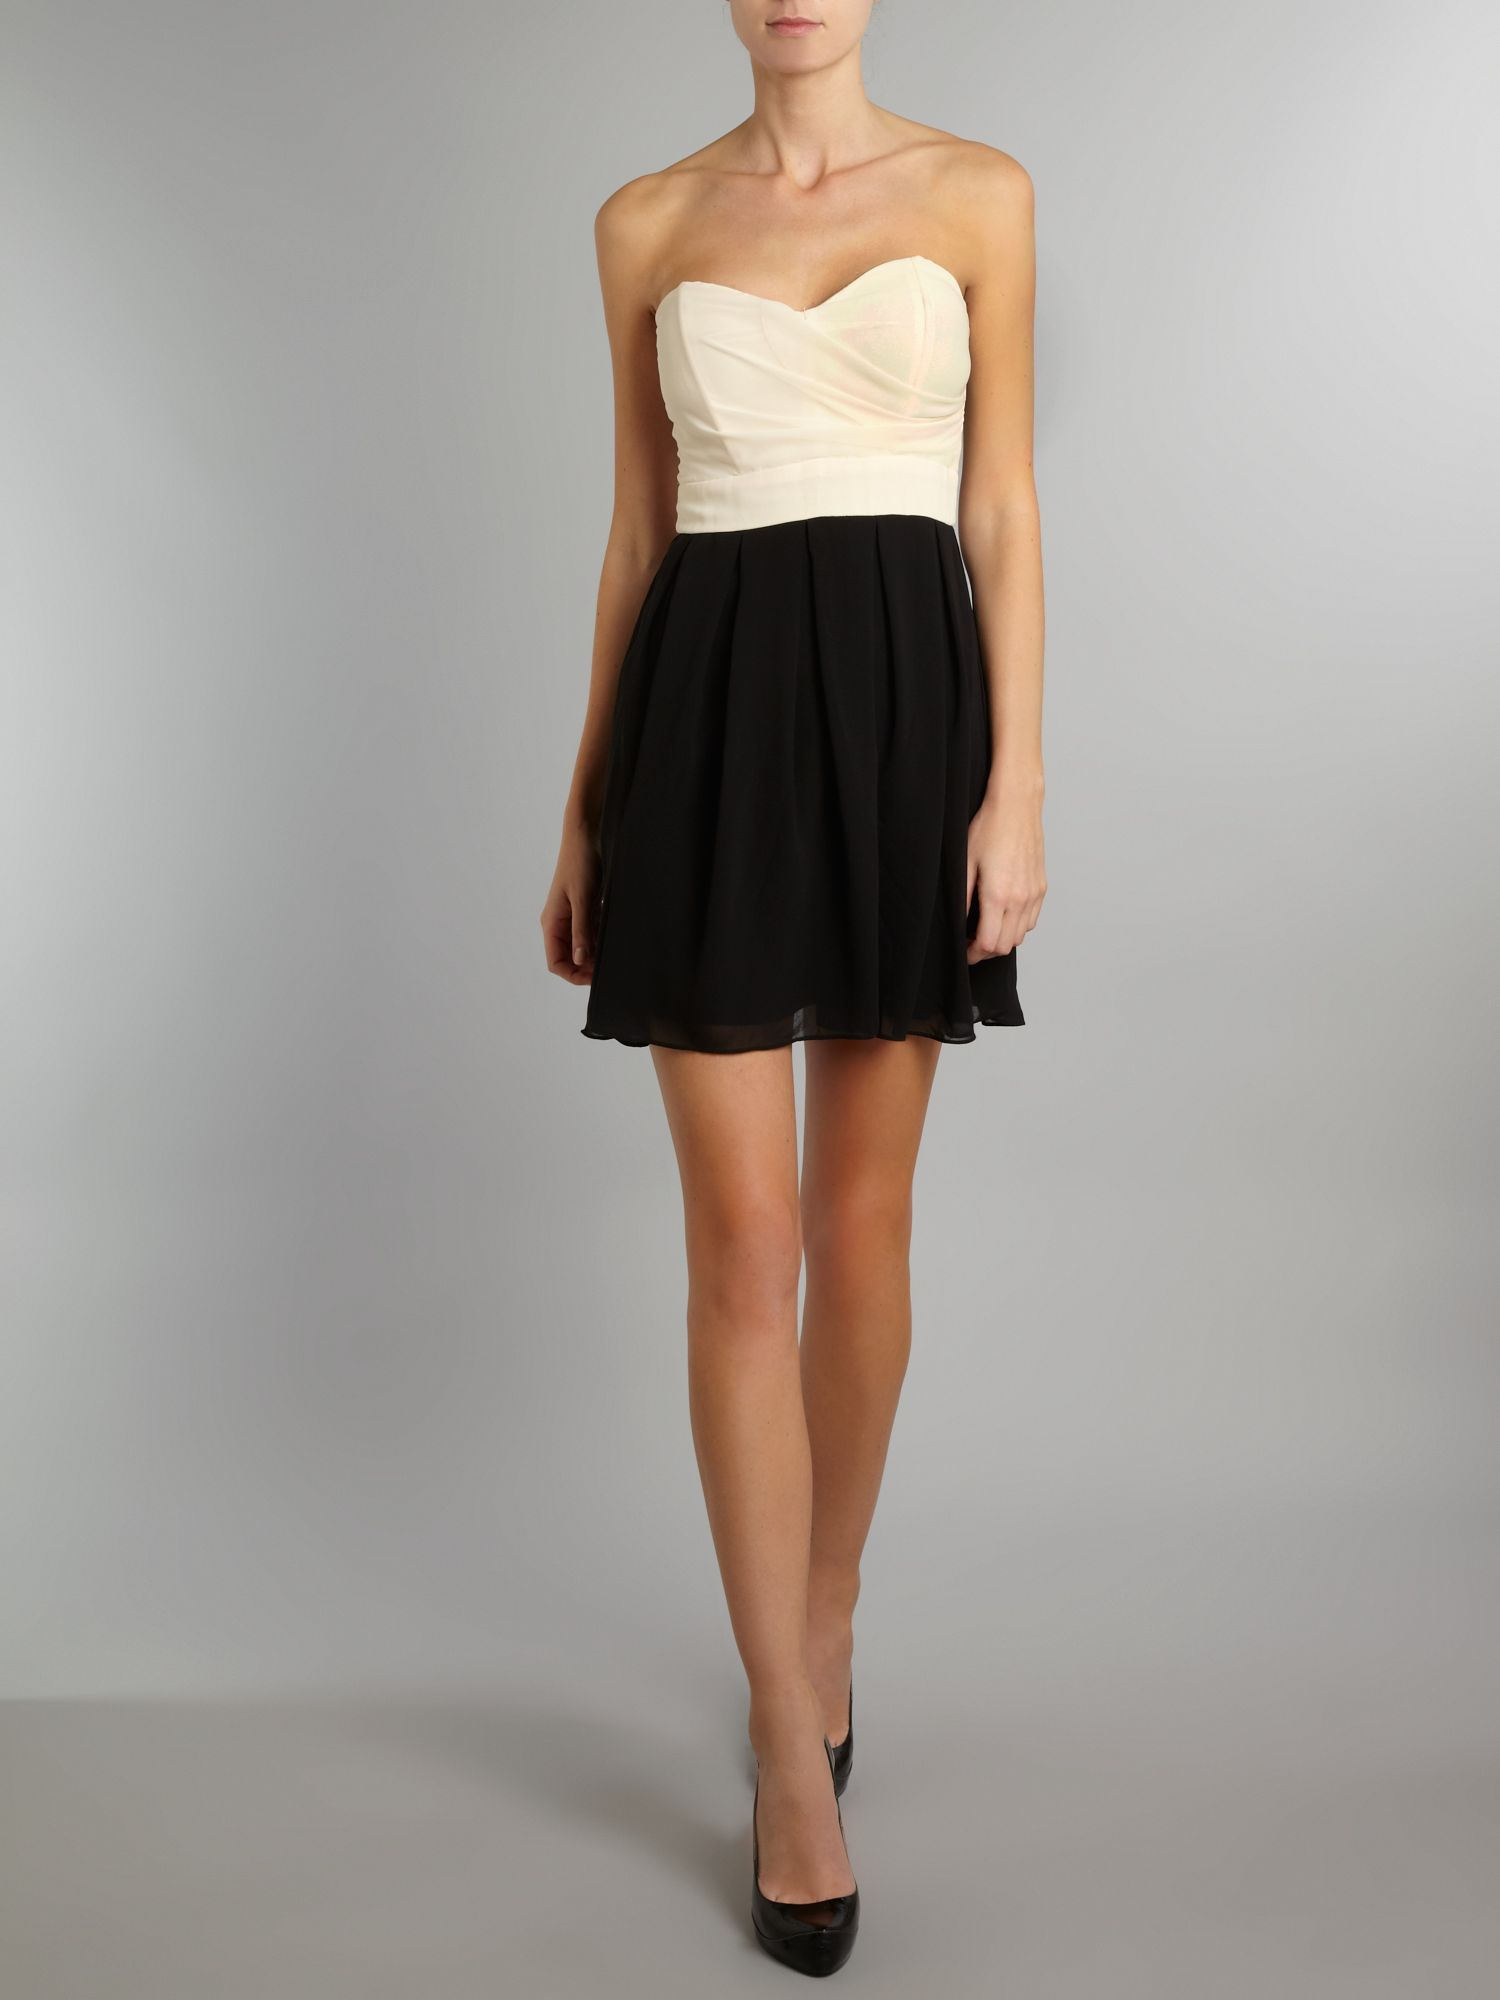 Sleeveless chiffon bustier dress